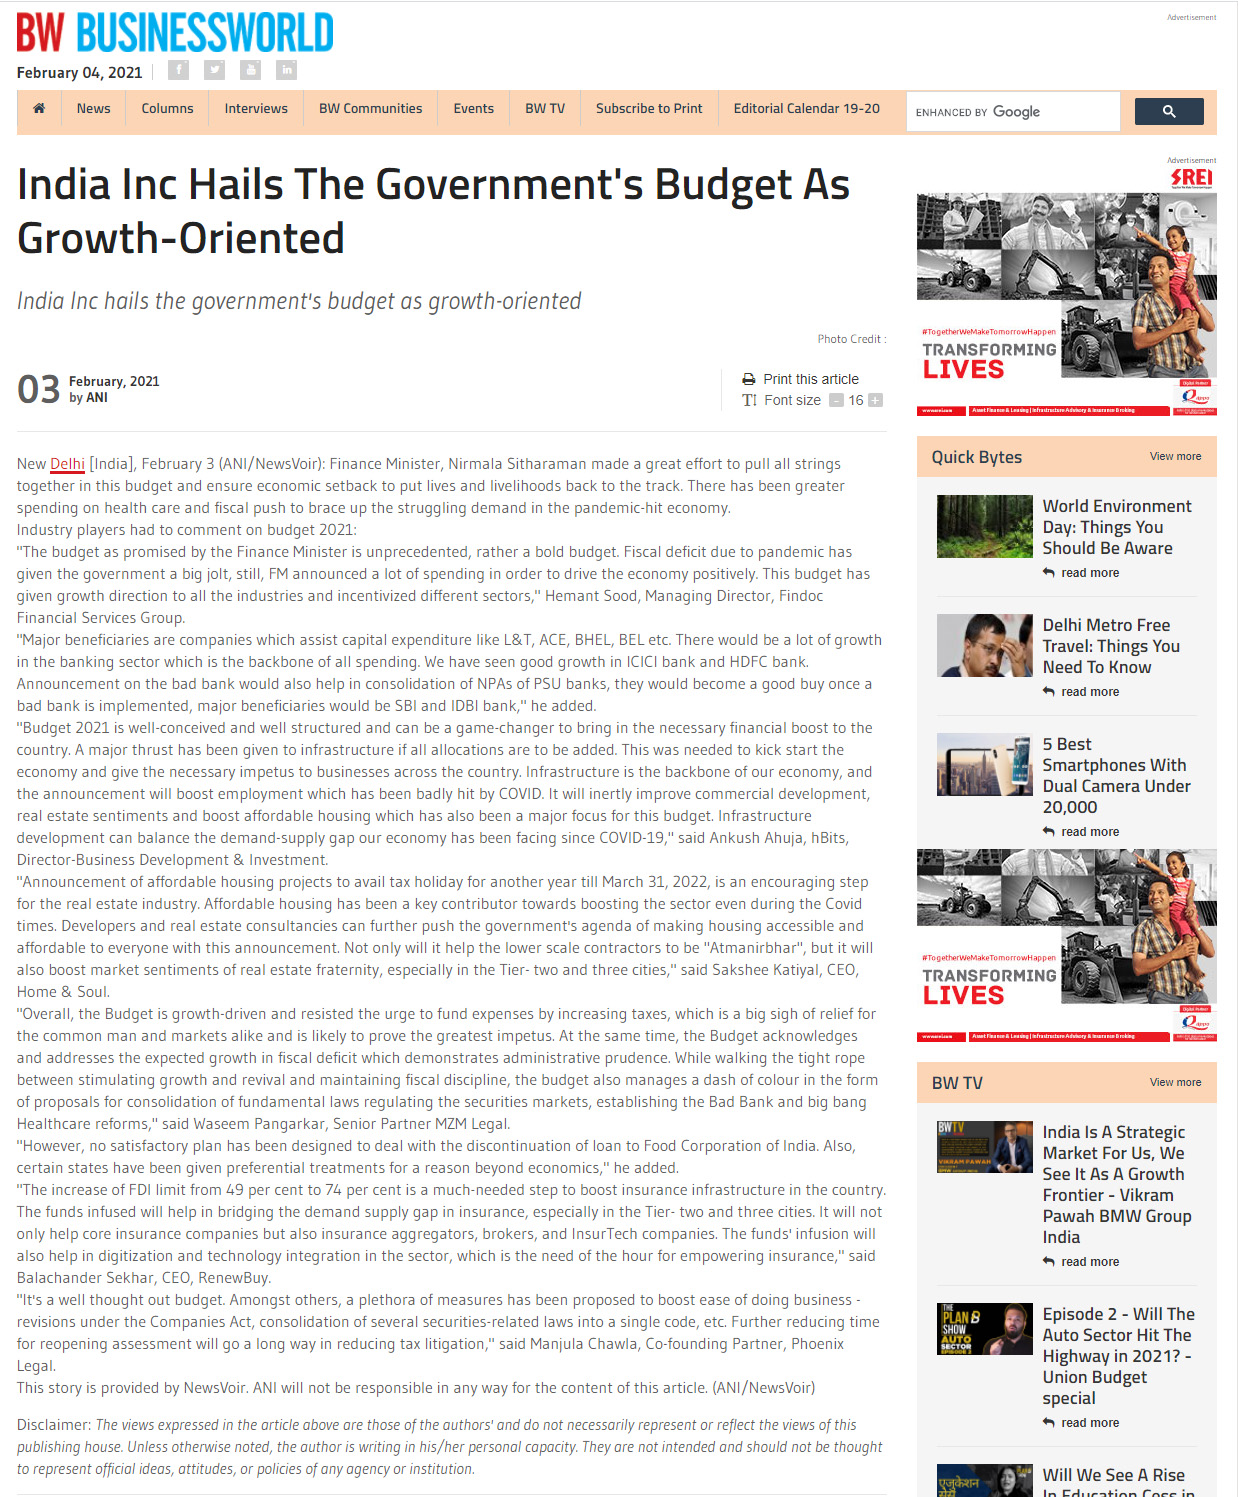 India Inc Hails The Government's Budget As Growth-Oriented